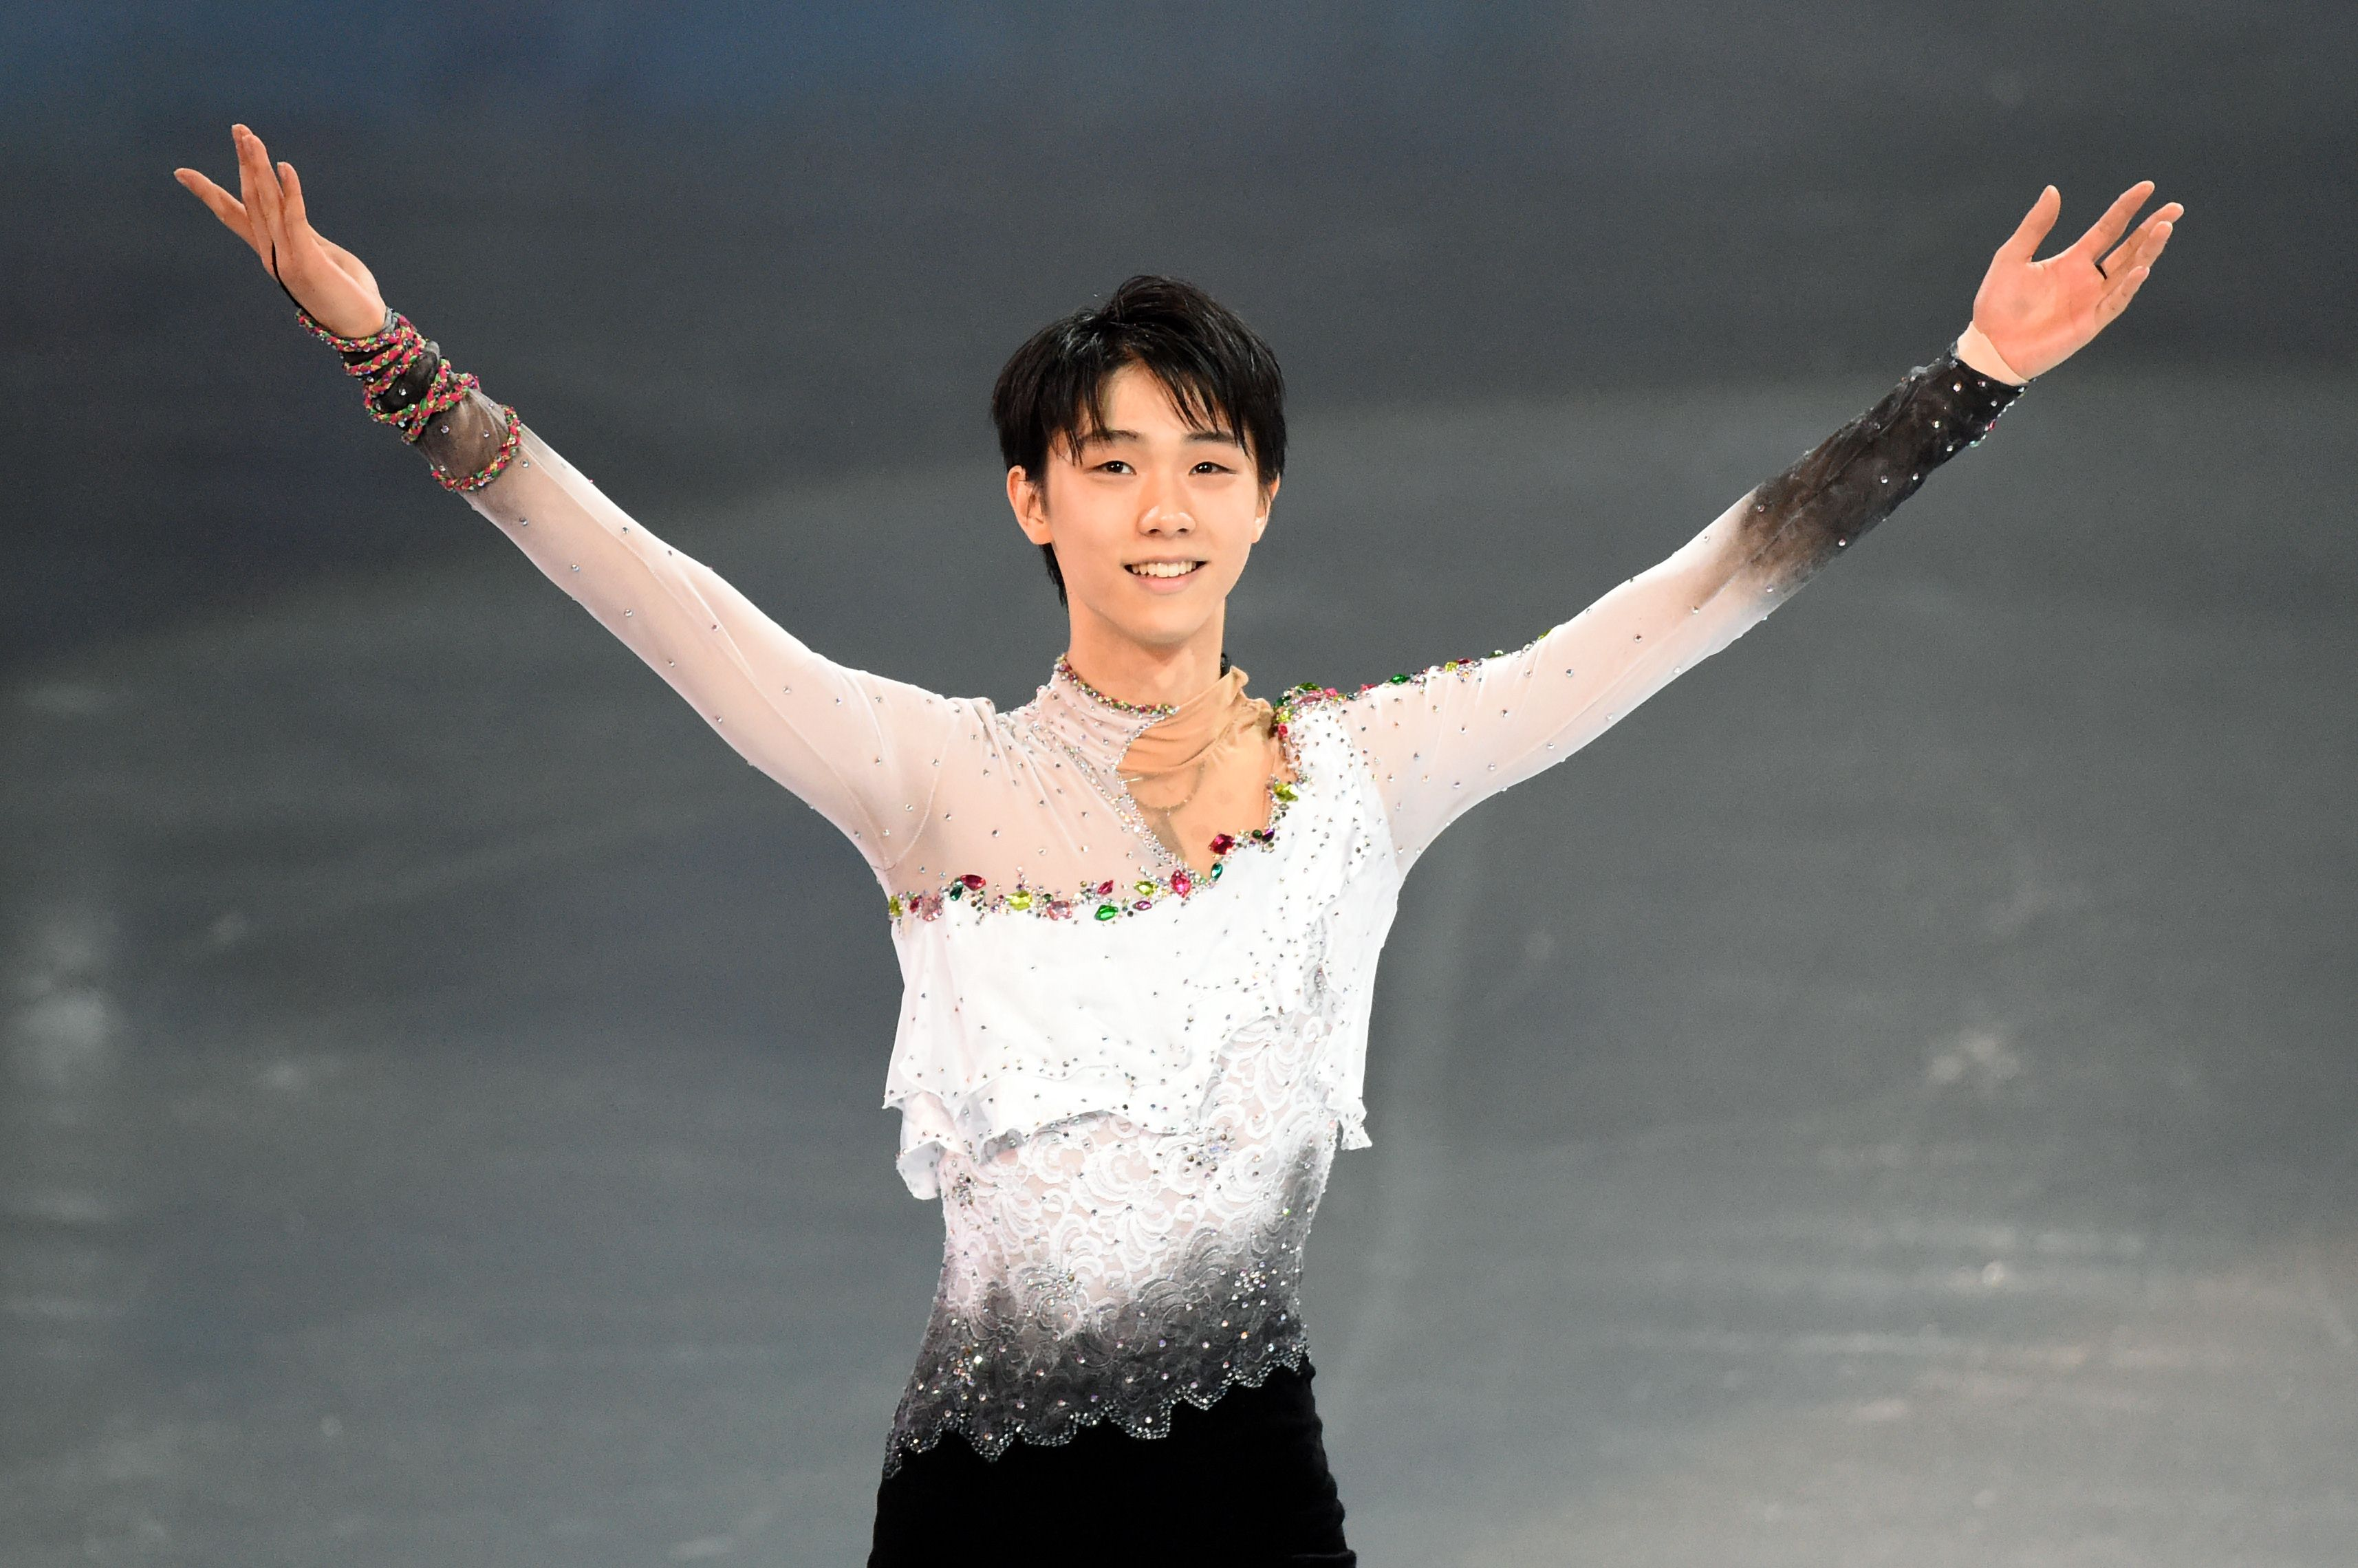 No easy journey: Yuzuru Hanyu, Japan's first men's champion in Olympic figure skating, faced difficult challenges to reach the 2014 Sochi Games in the aftermath of the March 11, 2011, disasters. | AFP-JIJI